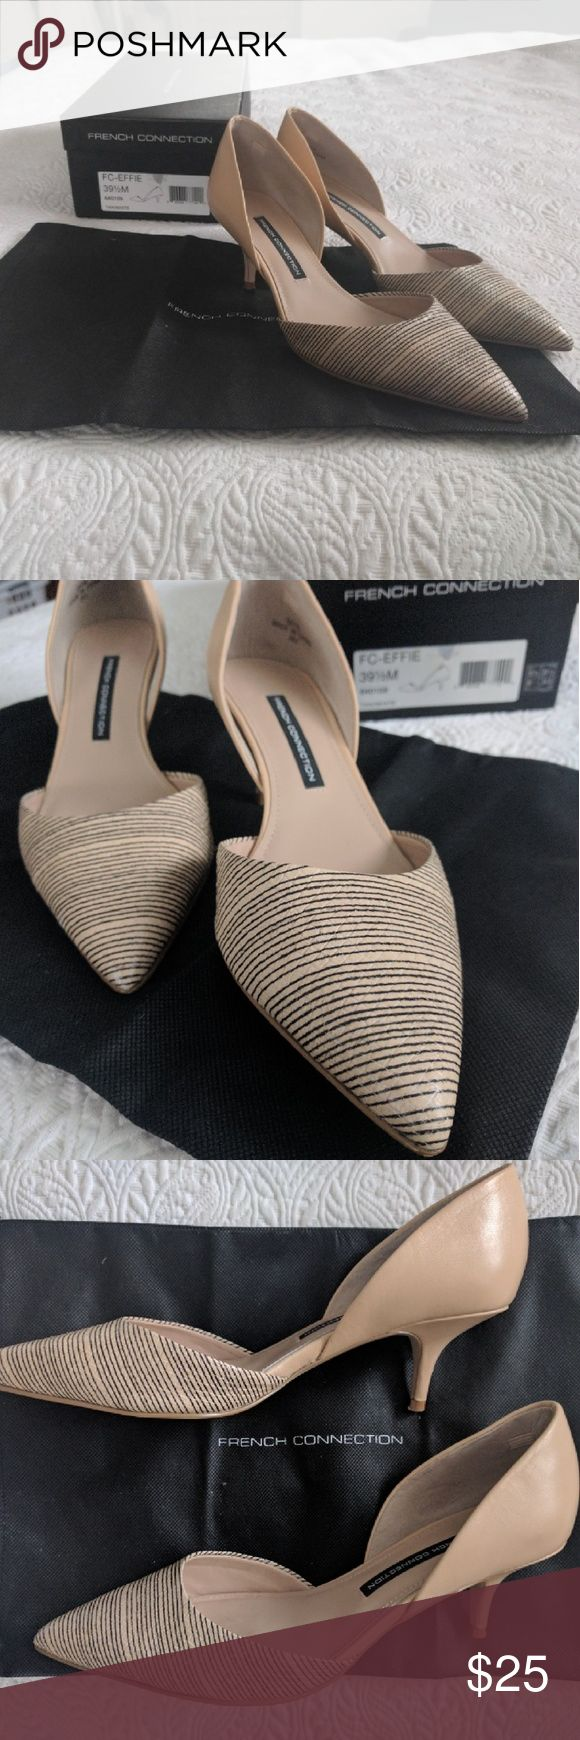 French Connection Nude Pointed Pumps Super cute French Connection nude heels with small heel. Great black detail in front, professional and versatile. Size 9.5 and in great condition. French Connection Shoes Heels